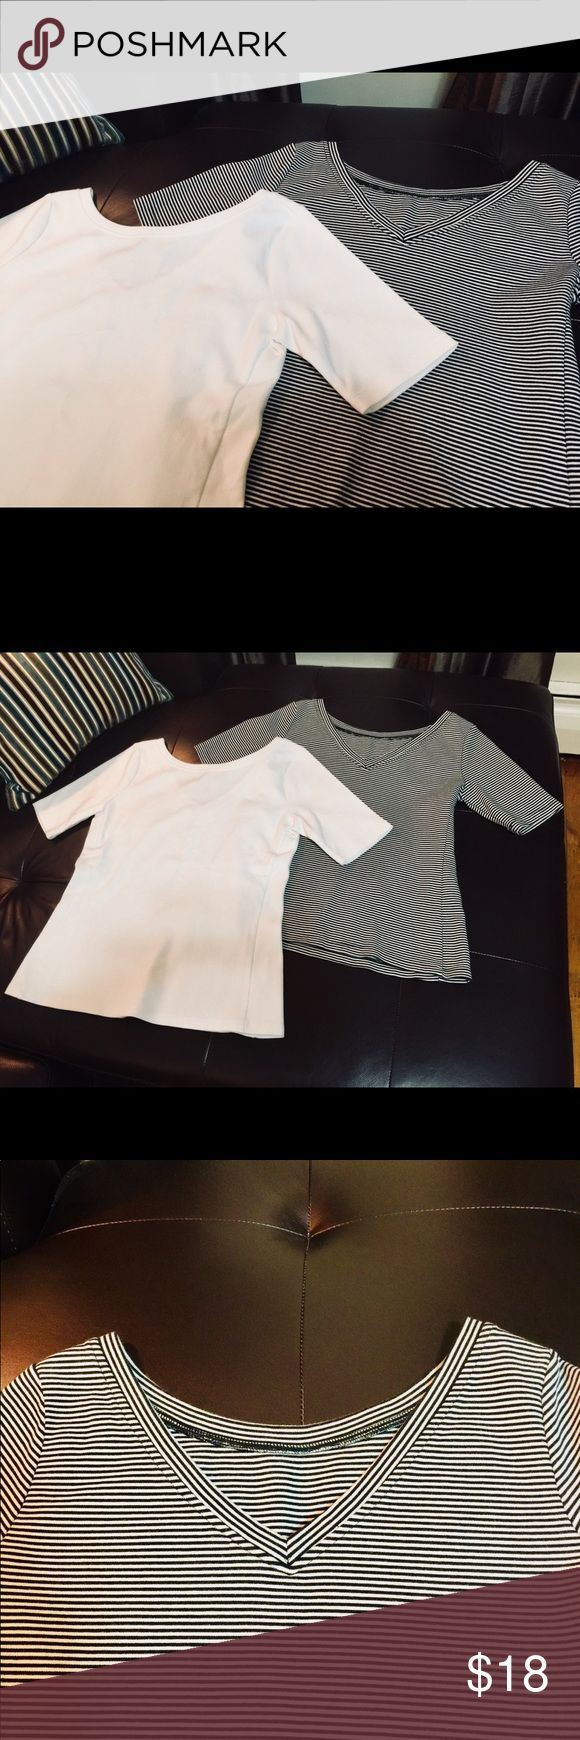 Two GAP Ponte V-Back Tees - white & striped Two for the price of one! + Versatile layering tees in a heftier fabric -great for cooler weather! + 59% cotton, 39% modal, 2% spandex + Straight silhouette with an easy, relaxed fit; hits at the hip + V-back; can also be worn as a v-neck in front + Mid-arm short sleeves + From Fall/Winter 2017  Adore these tees but prefer a snugger fit Labeled as X-Small, but fits like an loose Small  - White tee: NWOT, never worn - Striped tee: Excellent…